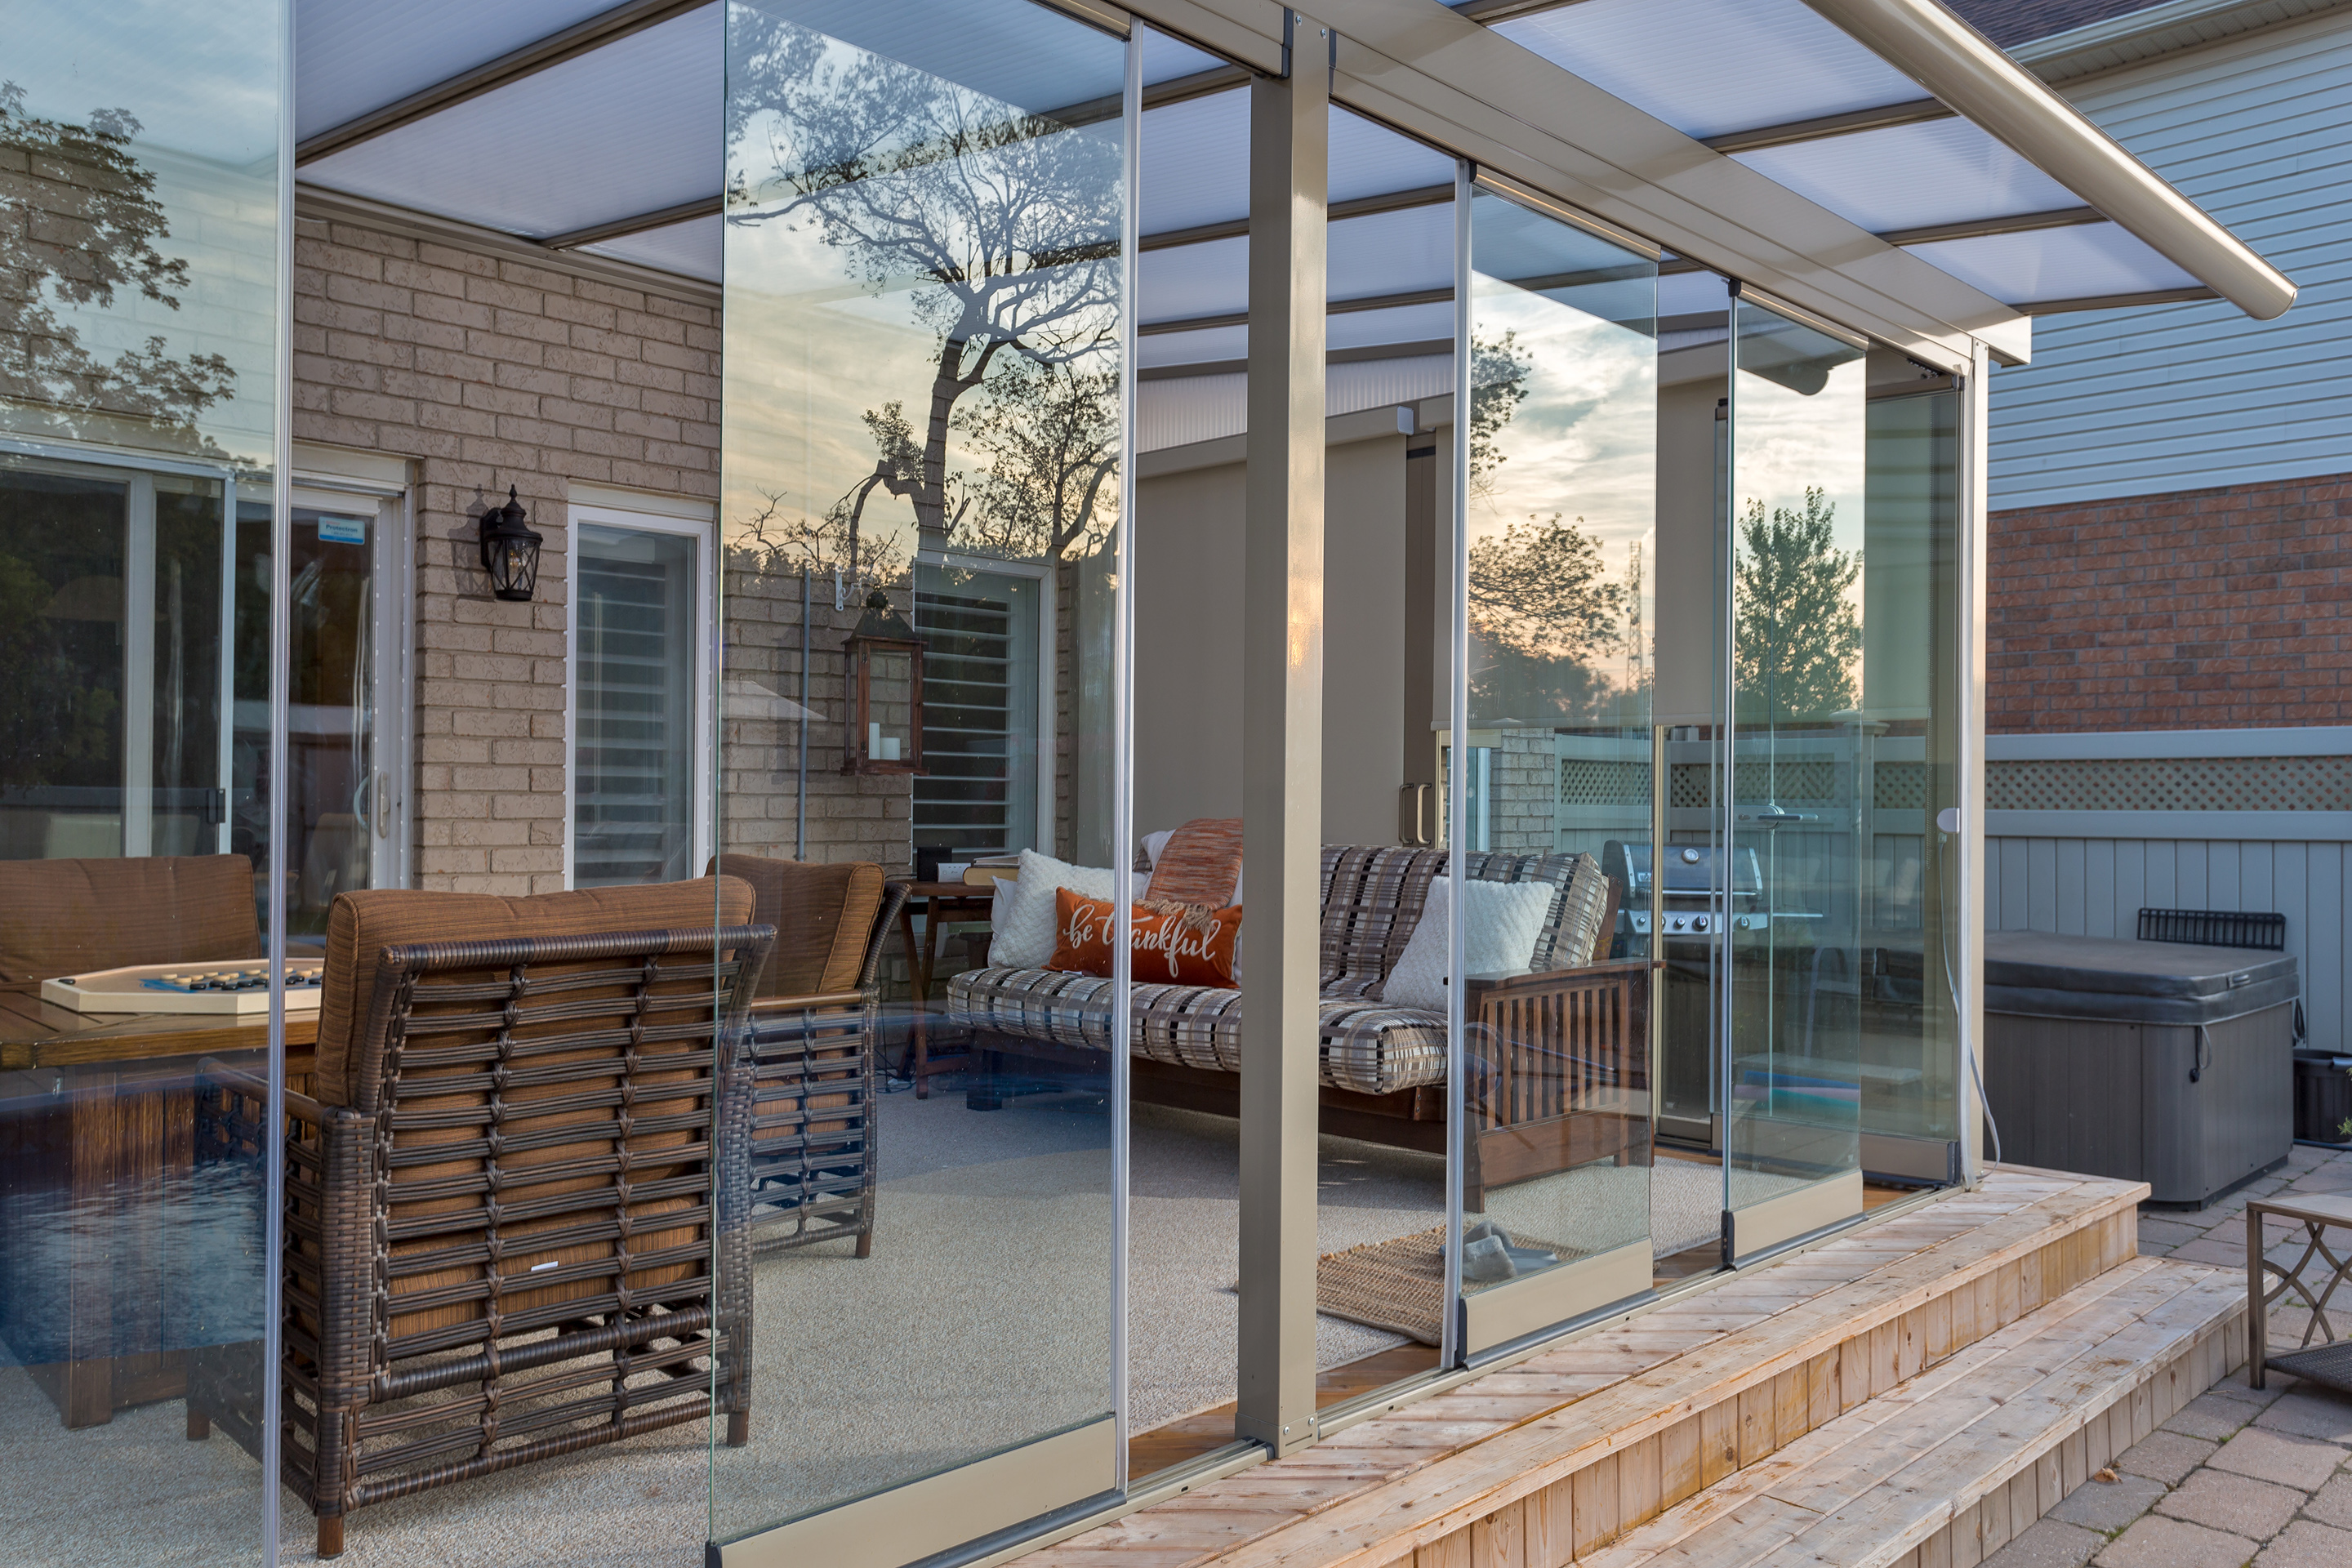 Lumon Canada manufacturing facility, retractable glass walls made in Canada, sunrooms made in Canada